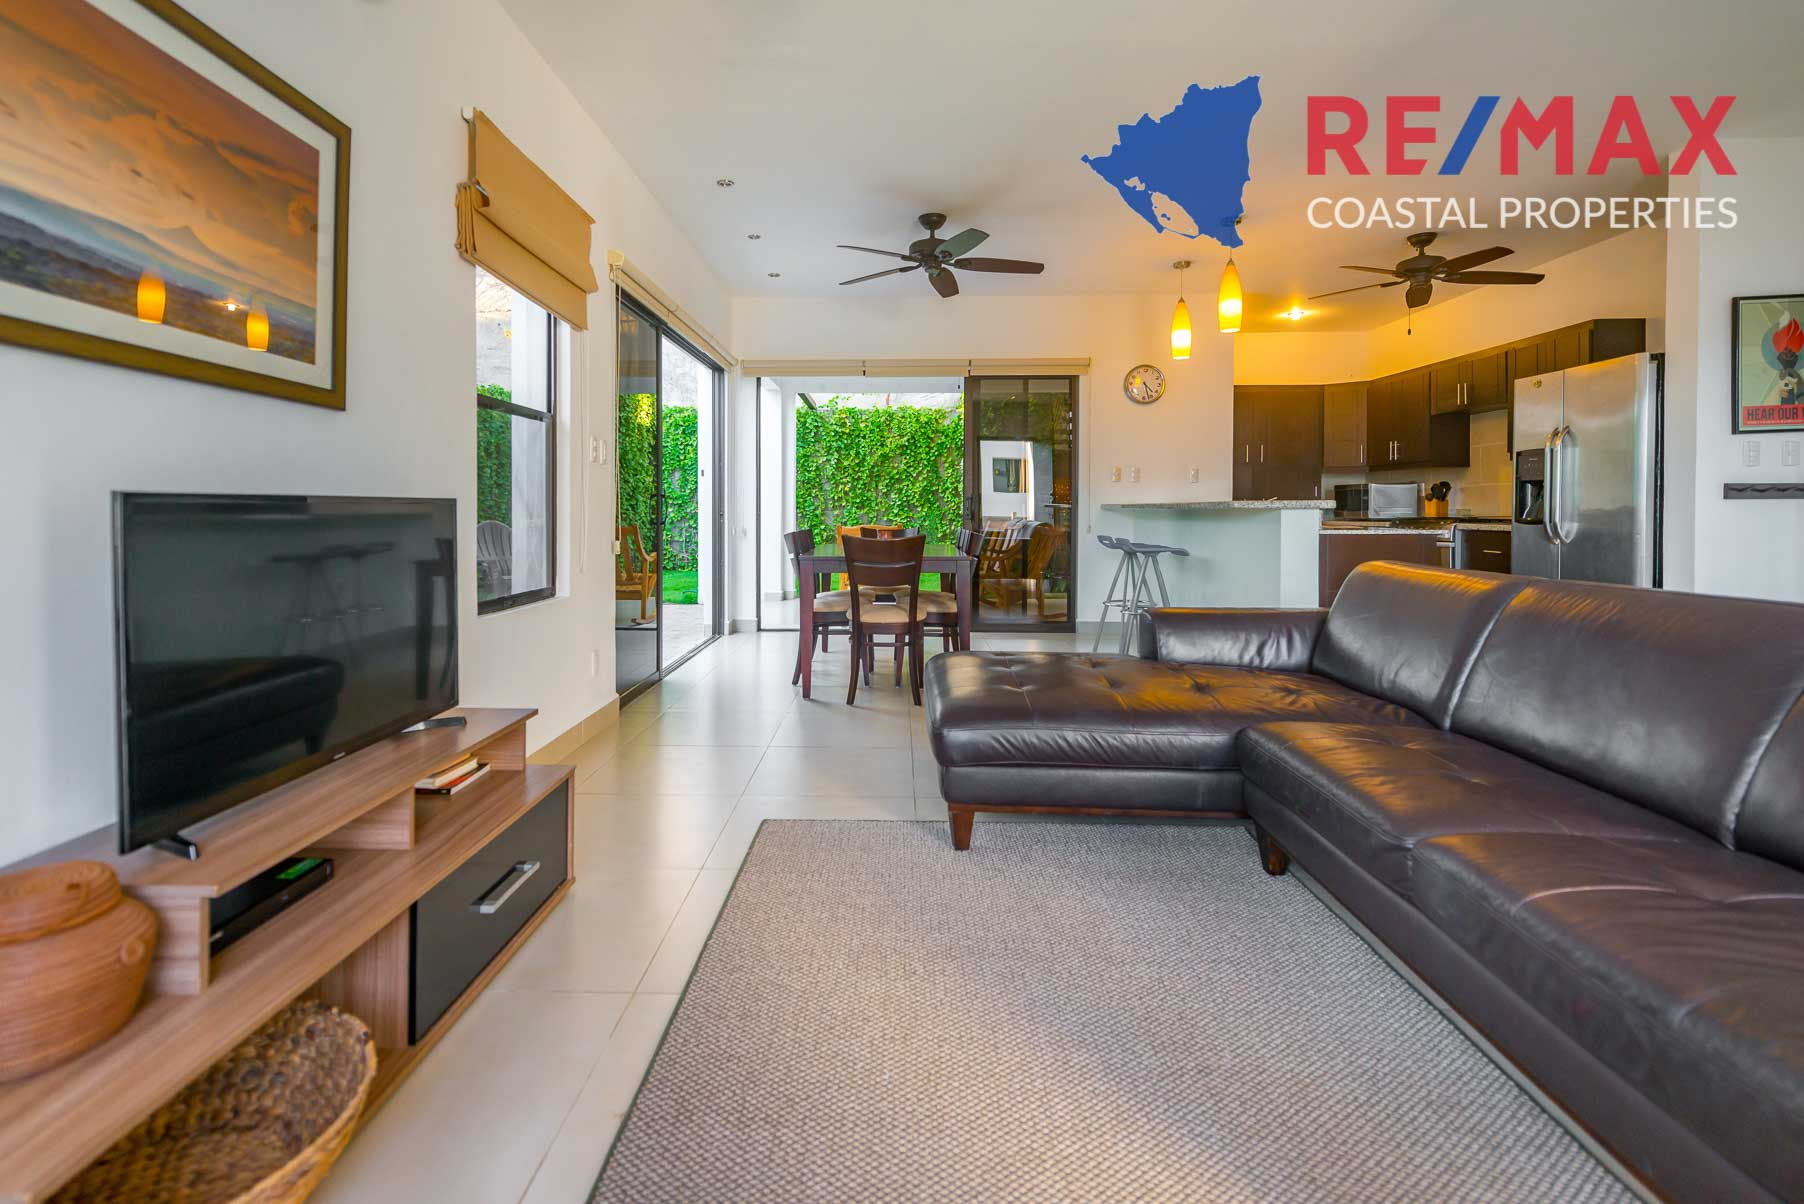 http://property-nicaragua.com/pedrodev/wp-content/uploads/2019/09/Townhomes-Miramar-13-REMAX-Coastal-Properties-2.jpg